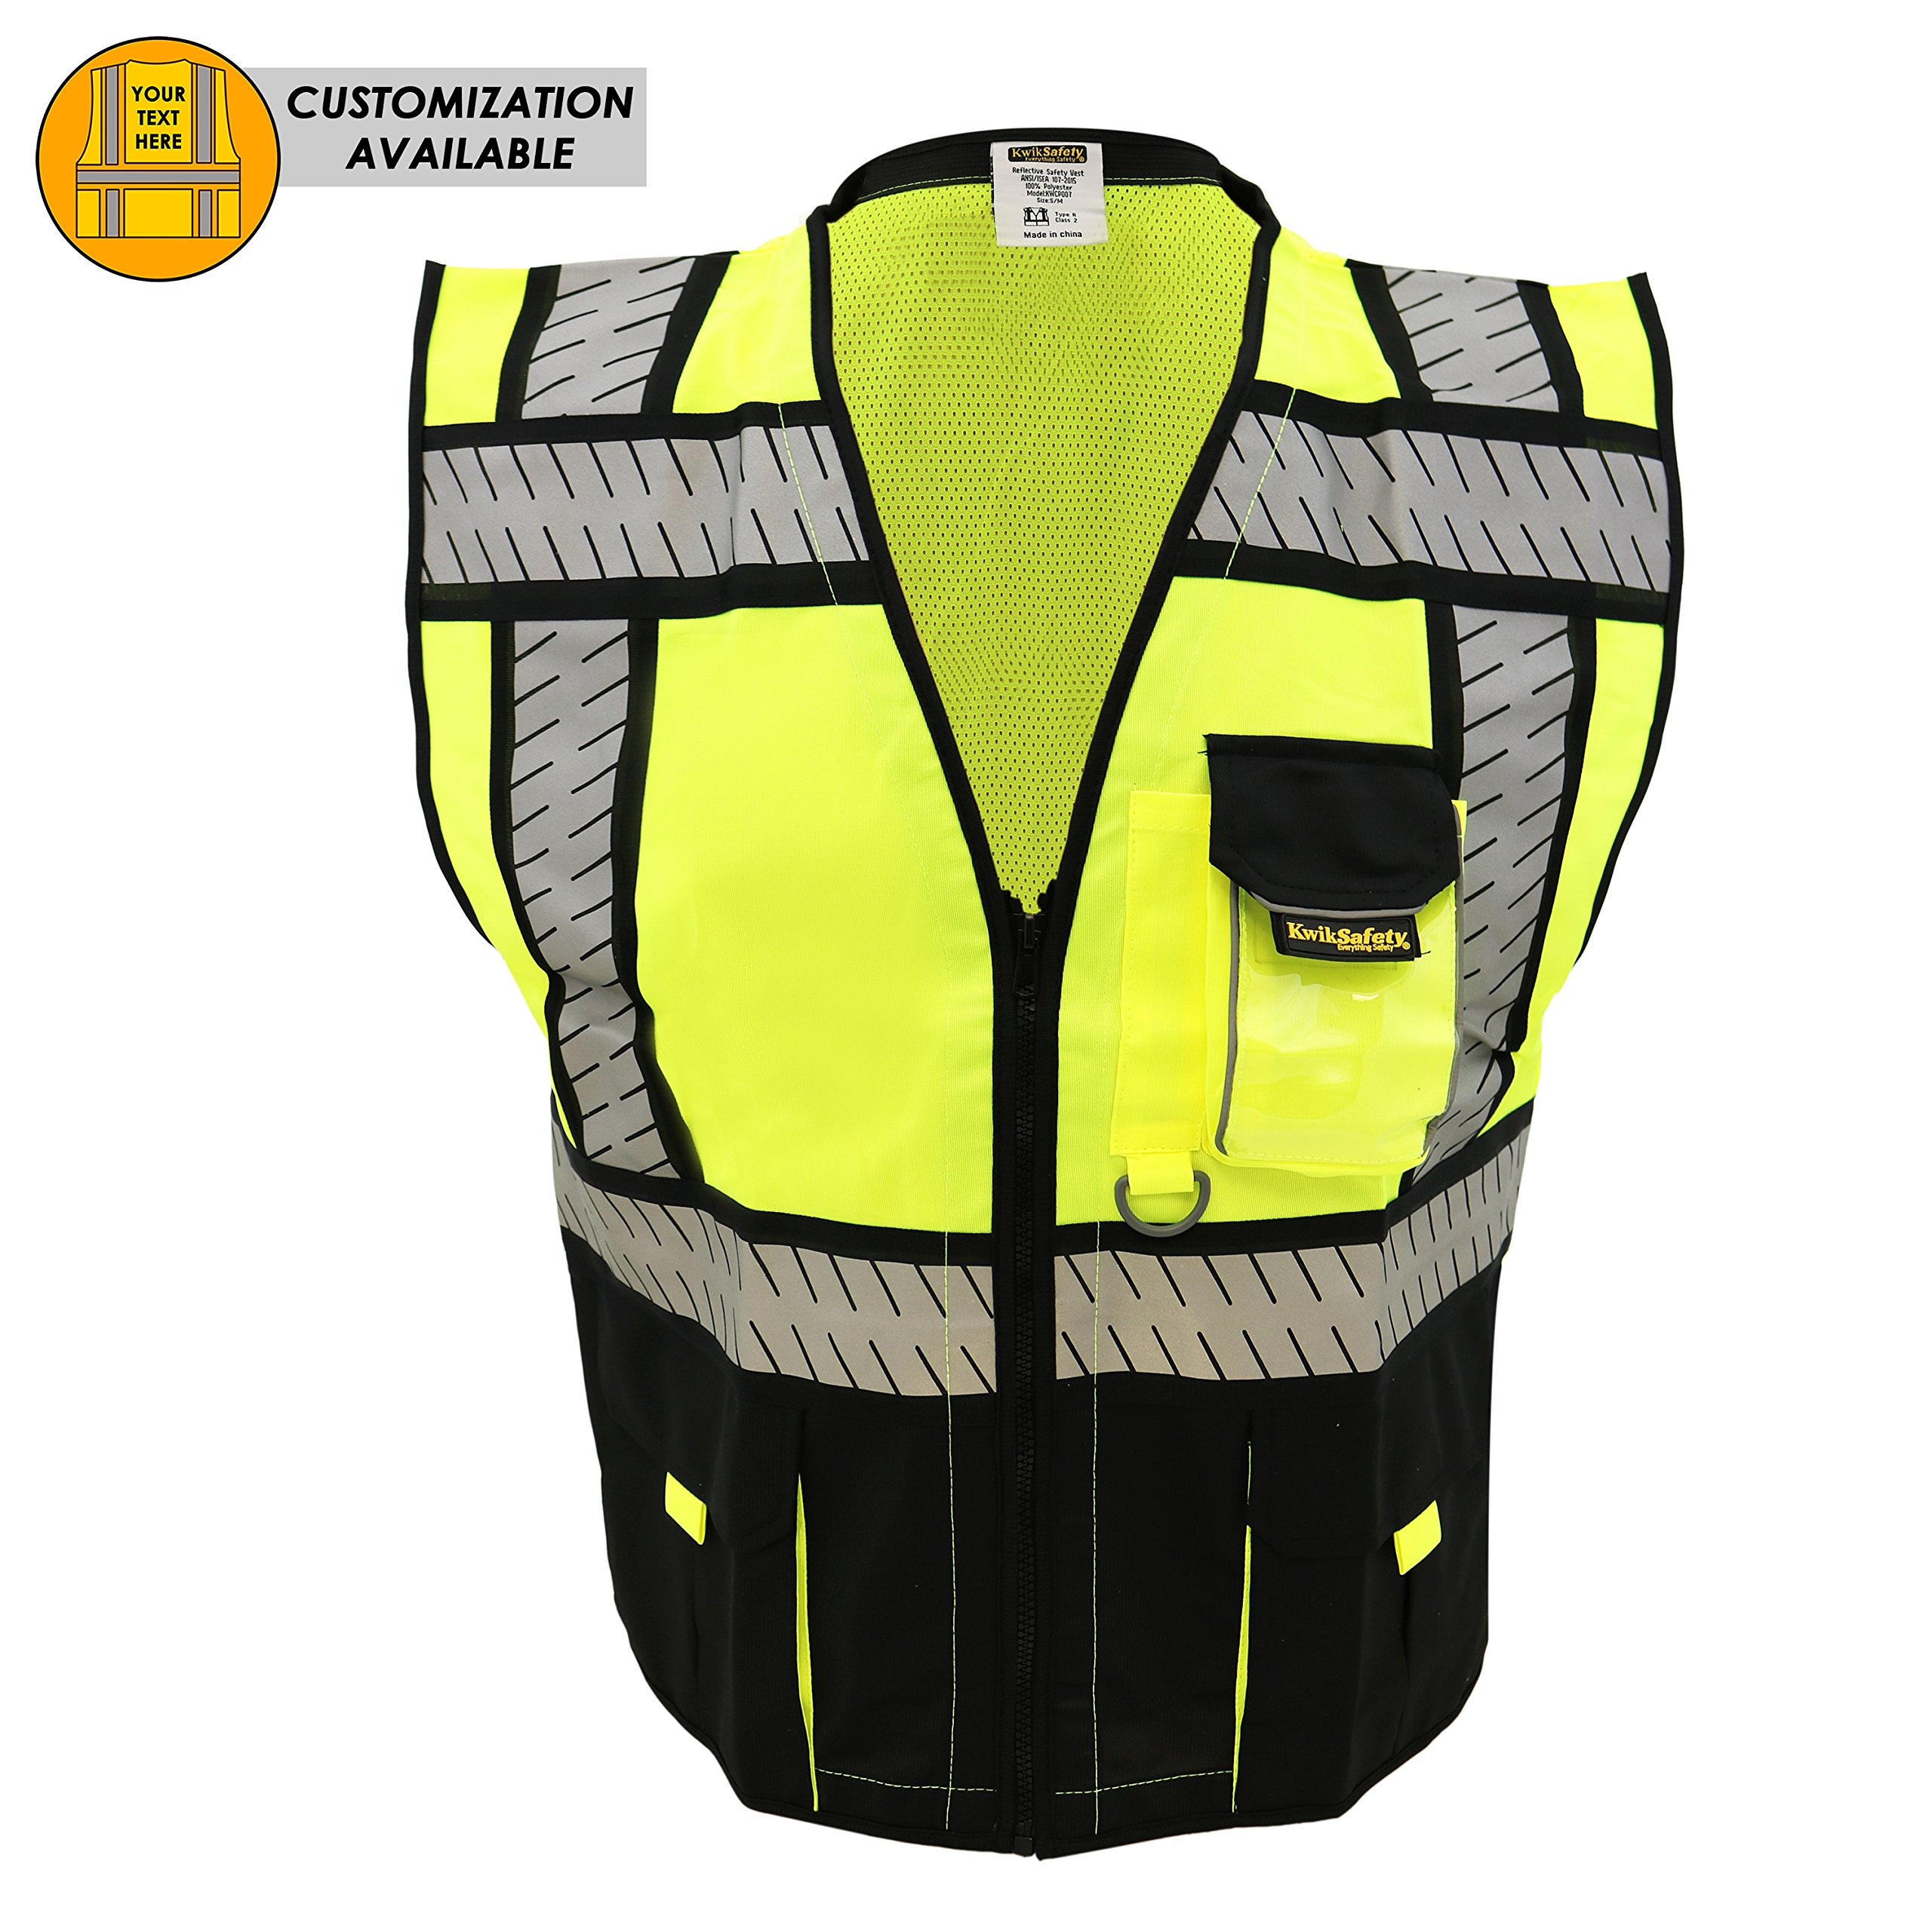 KwikSafety SPECIALIST Safety Vest | Class 2 ANSI OSHA PPE | High Visibility Reflective Stripes, Heavy Duty Mesh with Pockets and Zipper | Hi-Vis Construction Work Hi-Vis Surveyor Men | Black S/M